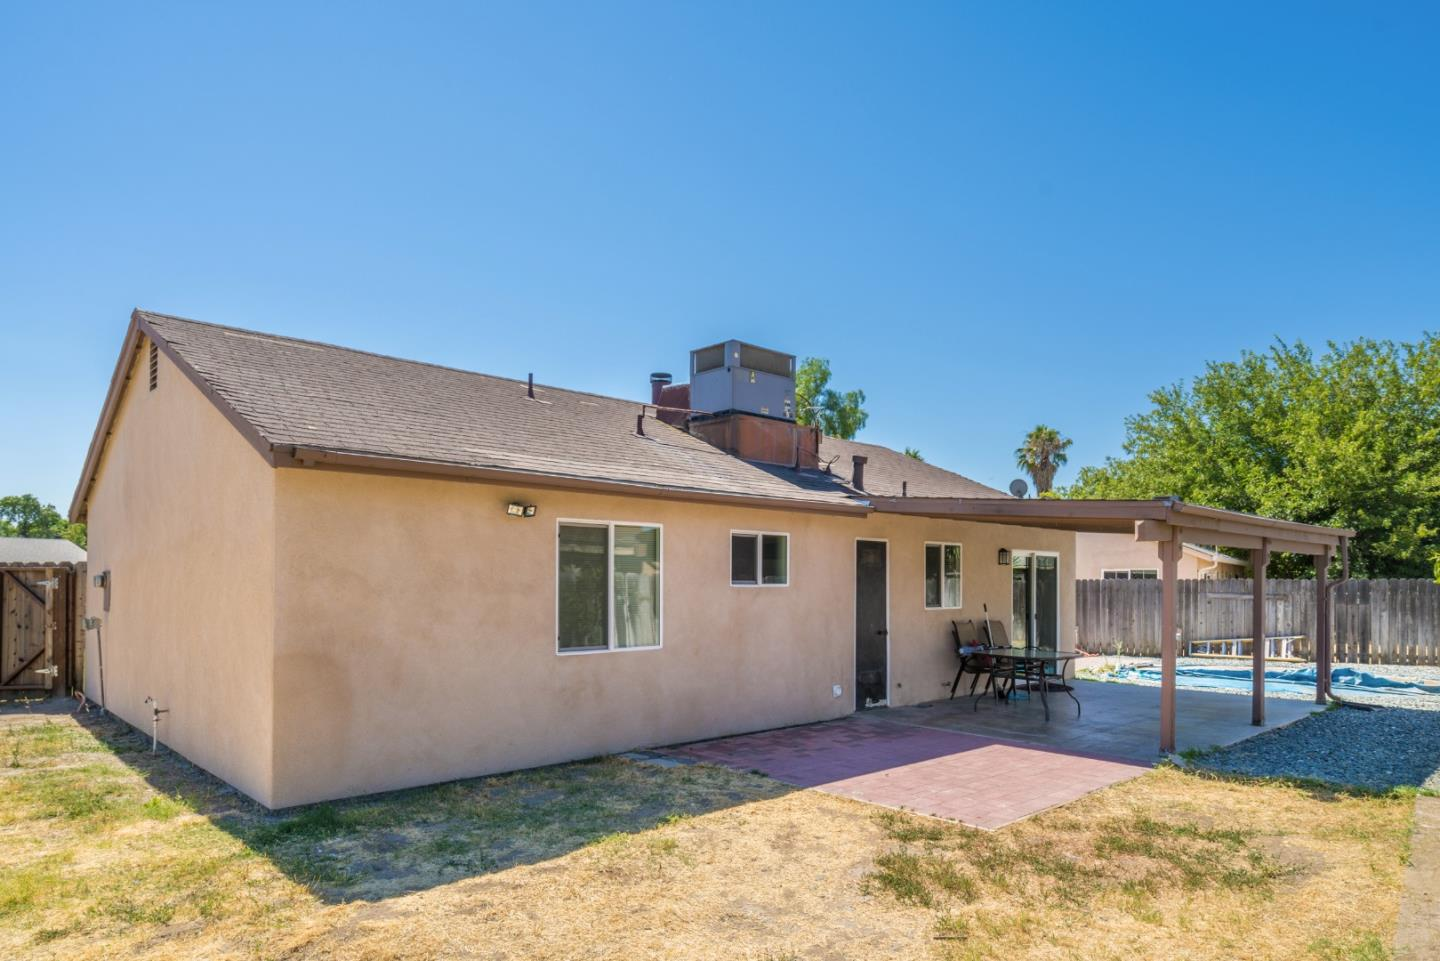 Additional photo for property listing at 3825 Missionwood Court  Ceres, California 95307 United States